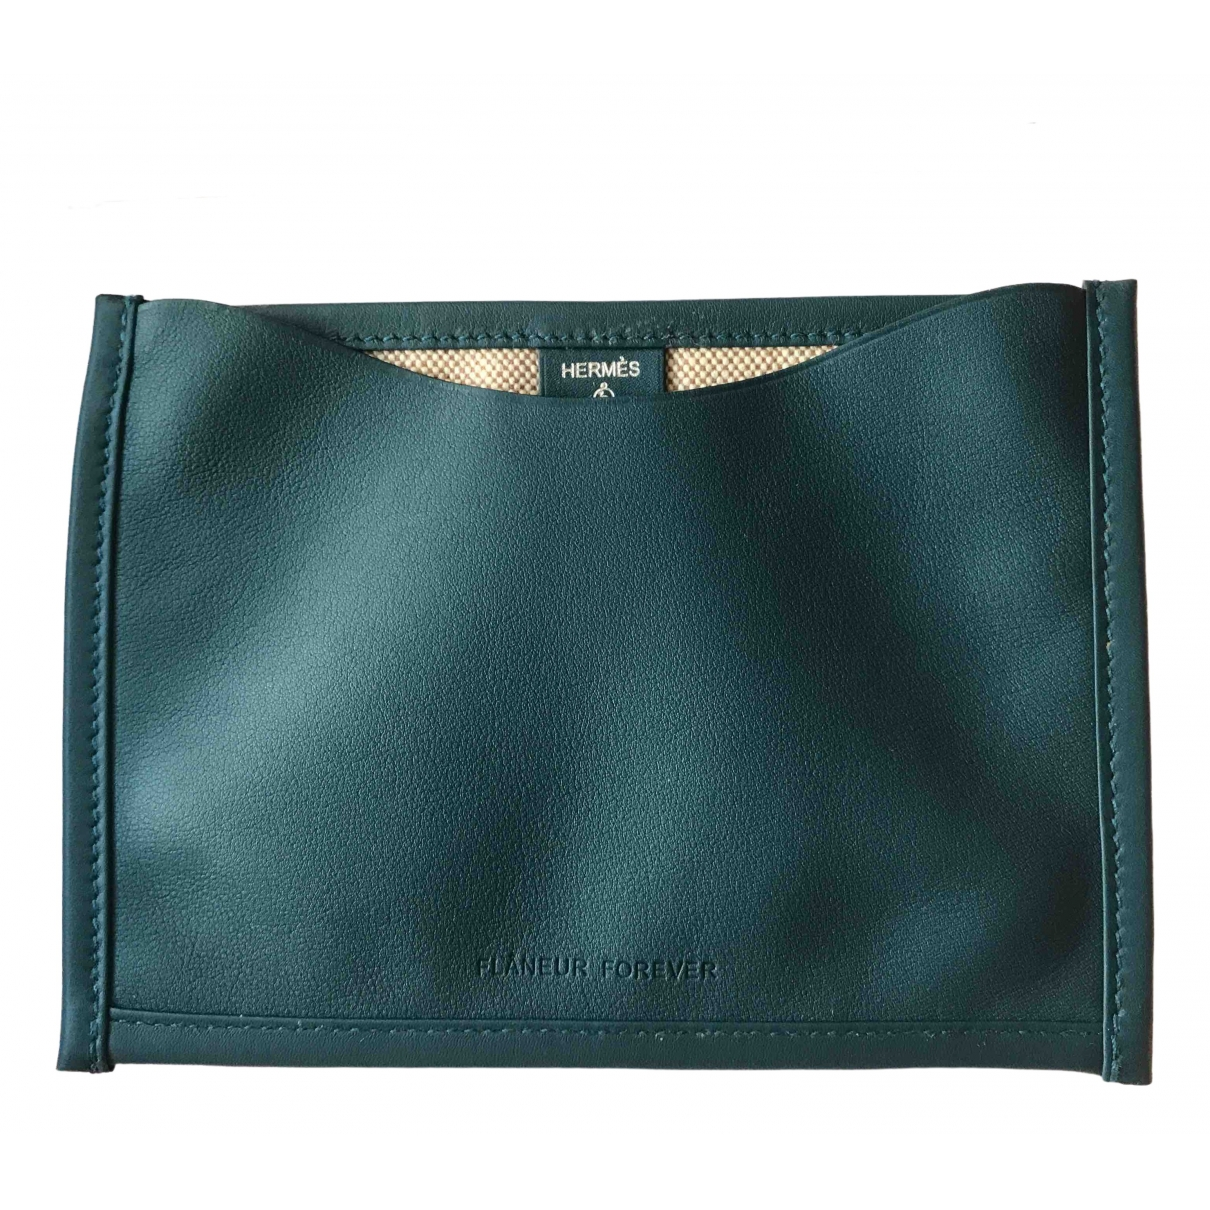 Hermes \N Clutch in  Blau Leder